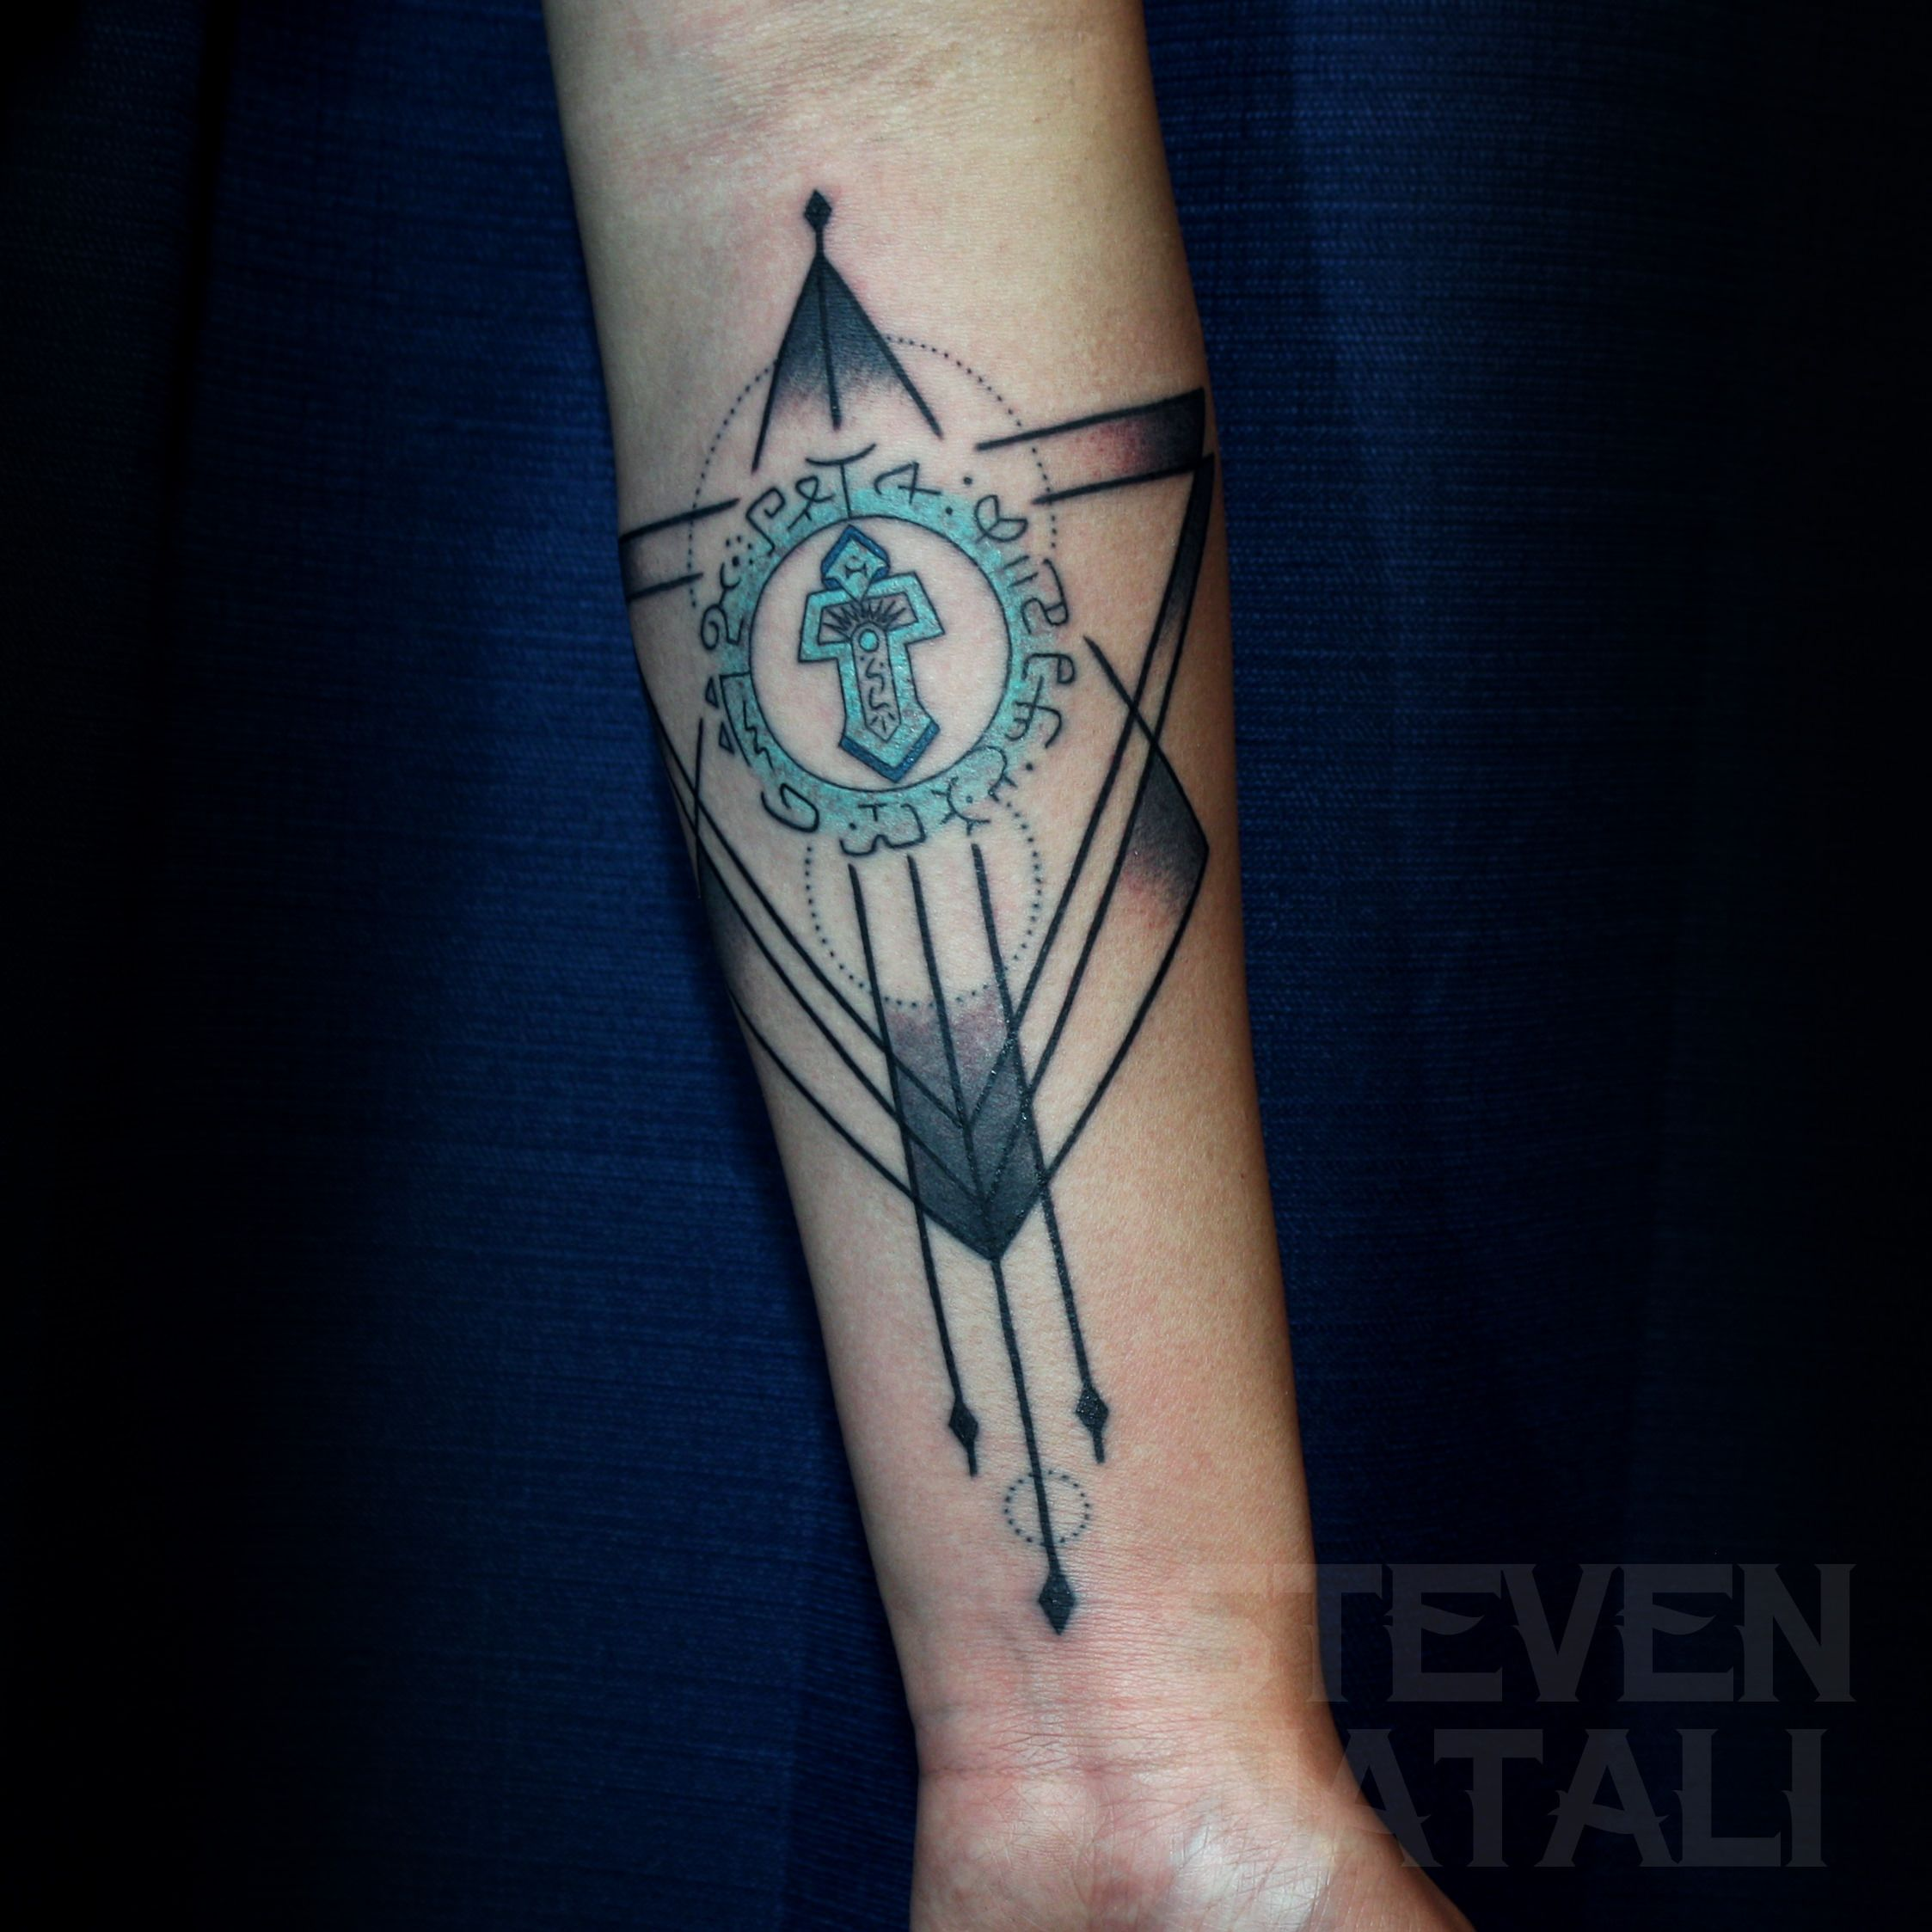 World Of Warcraft Design By Steven Natali At Sacred Soul Tattoo Seattle Wa Imgur Com Submitted By Volcom Life To R Tattoo 0 Soul Tattoo Tattoos Nerd Tattoo